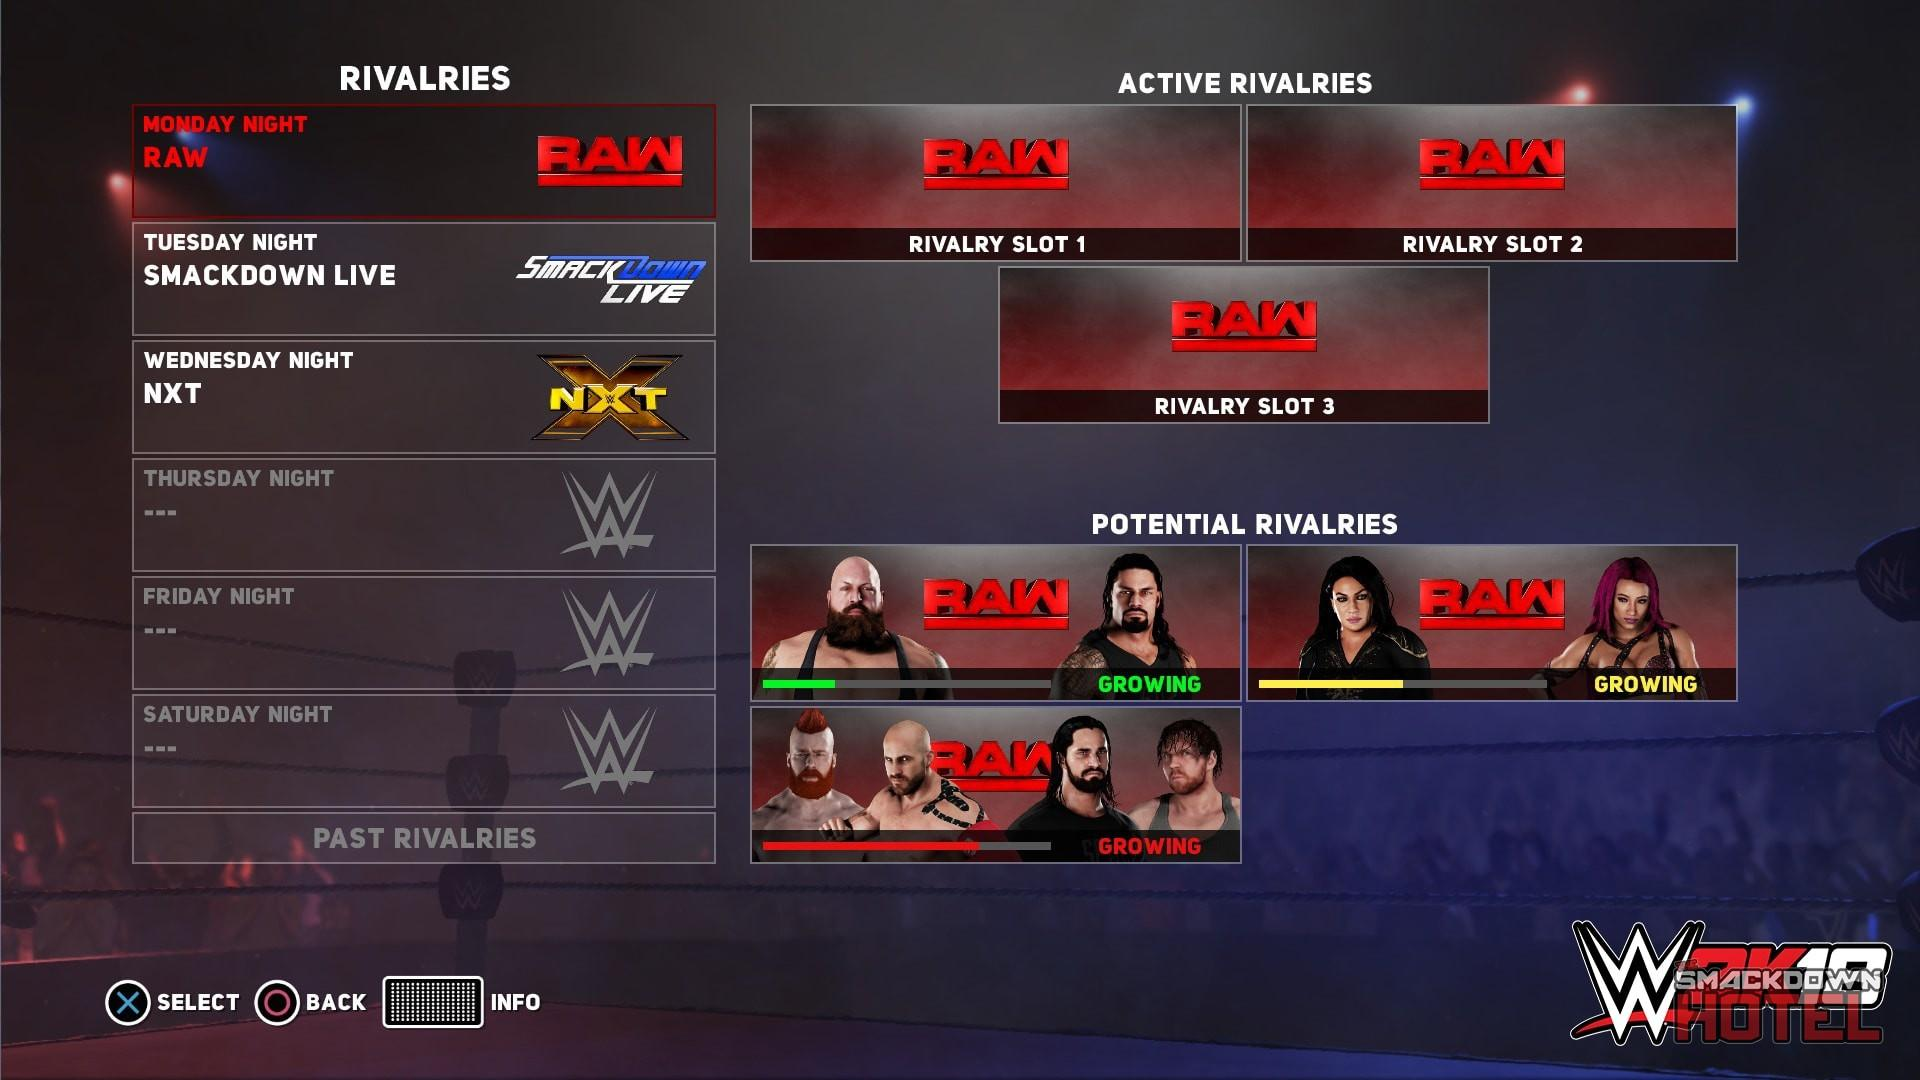 WWE2K18 Universe2 Rivalries